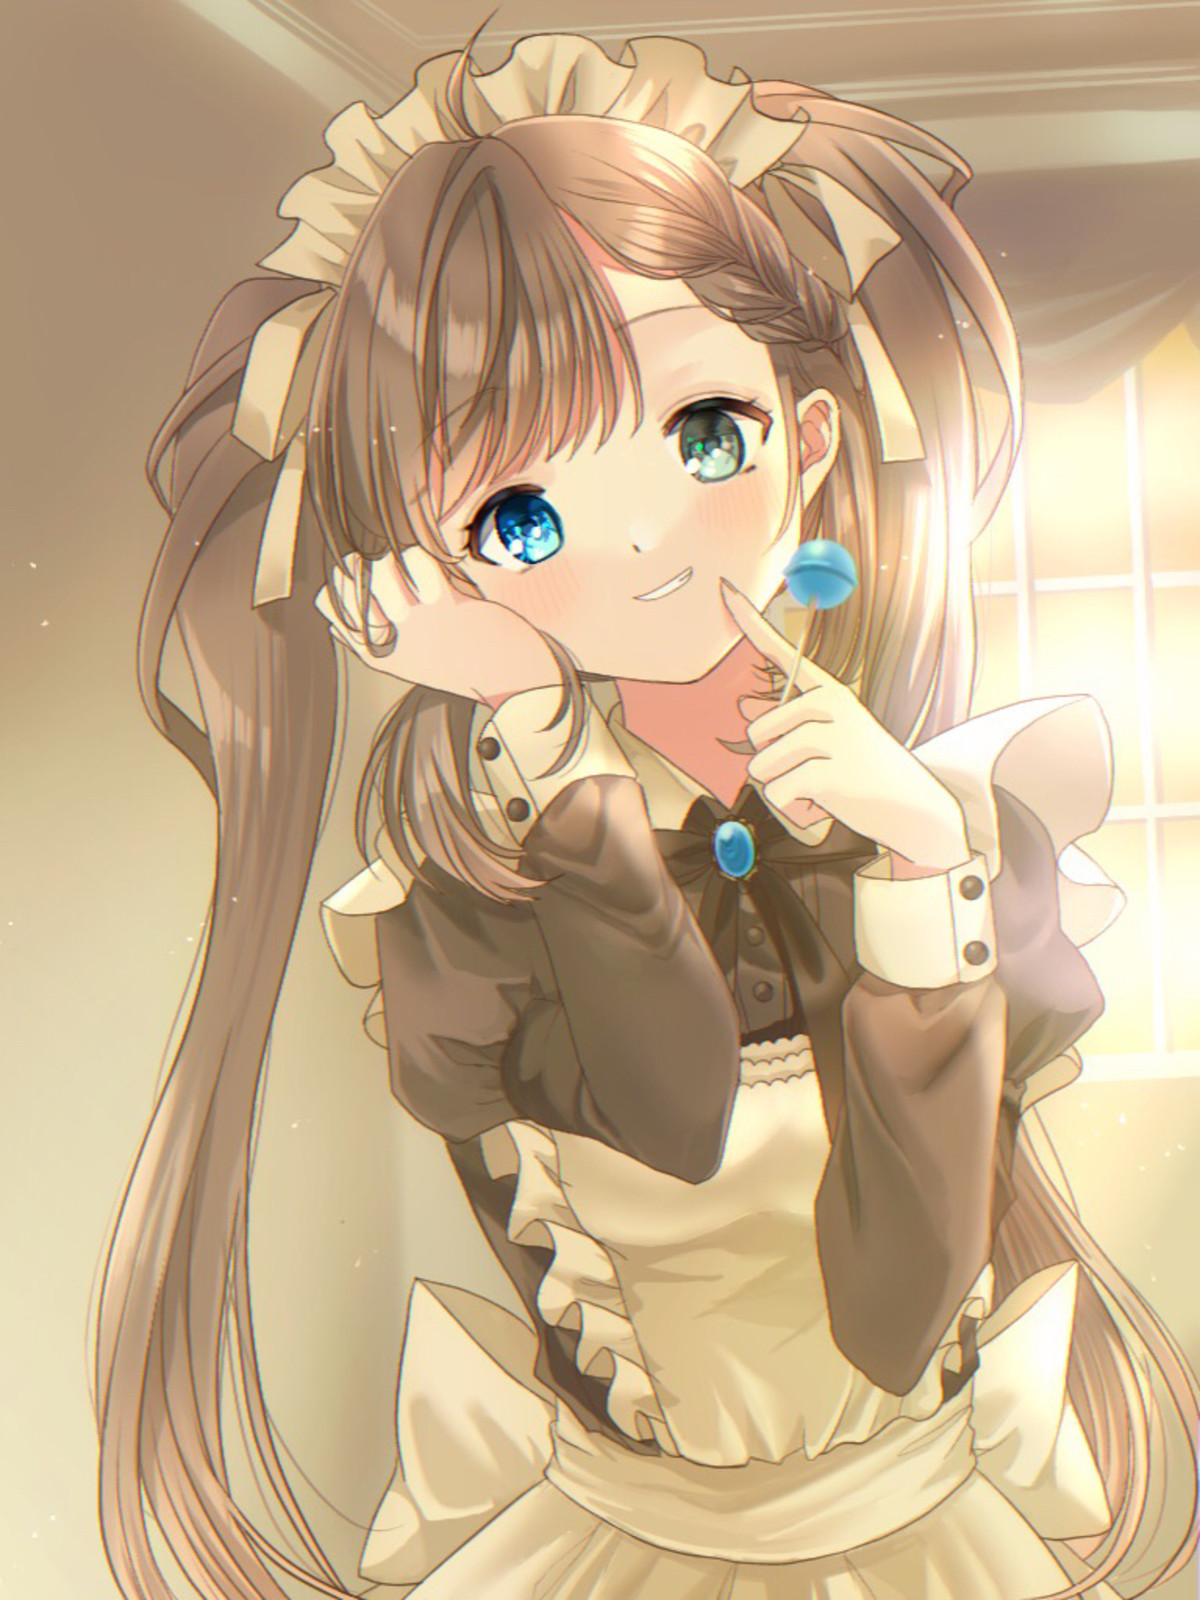 Maid March part 25. join list: SplendidServants (495 subs)Mention History join list: